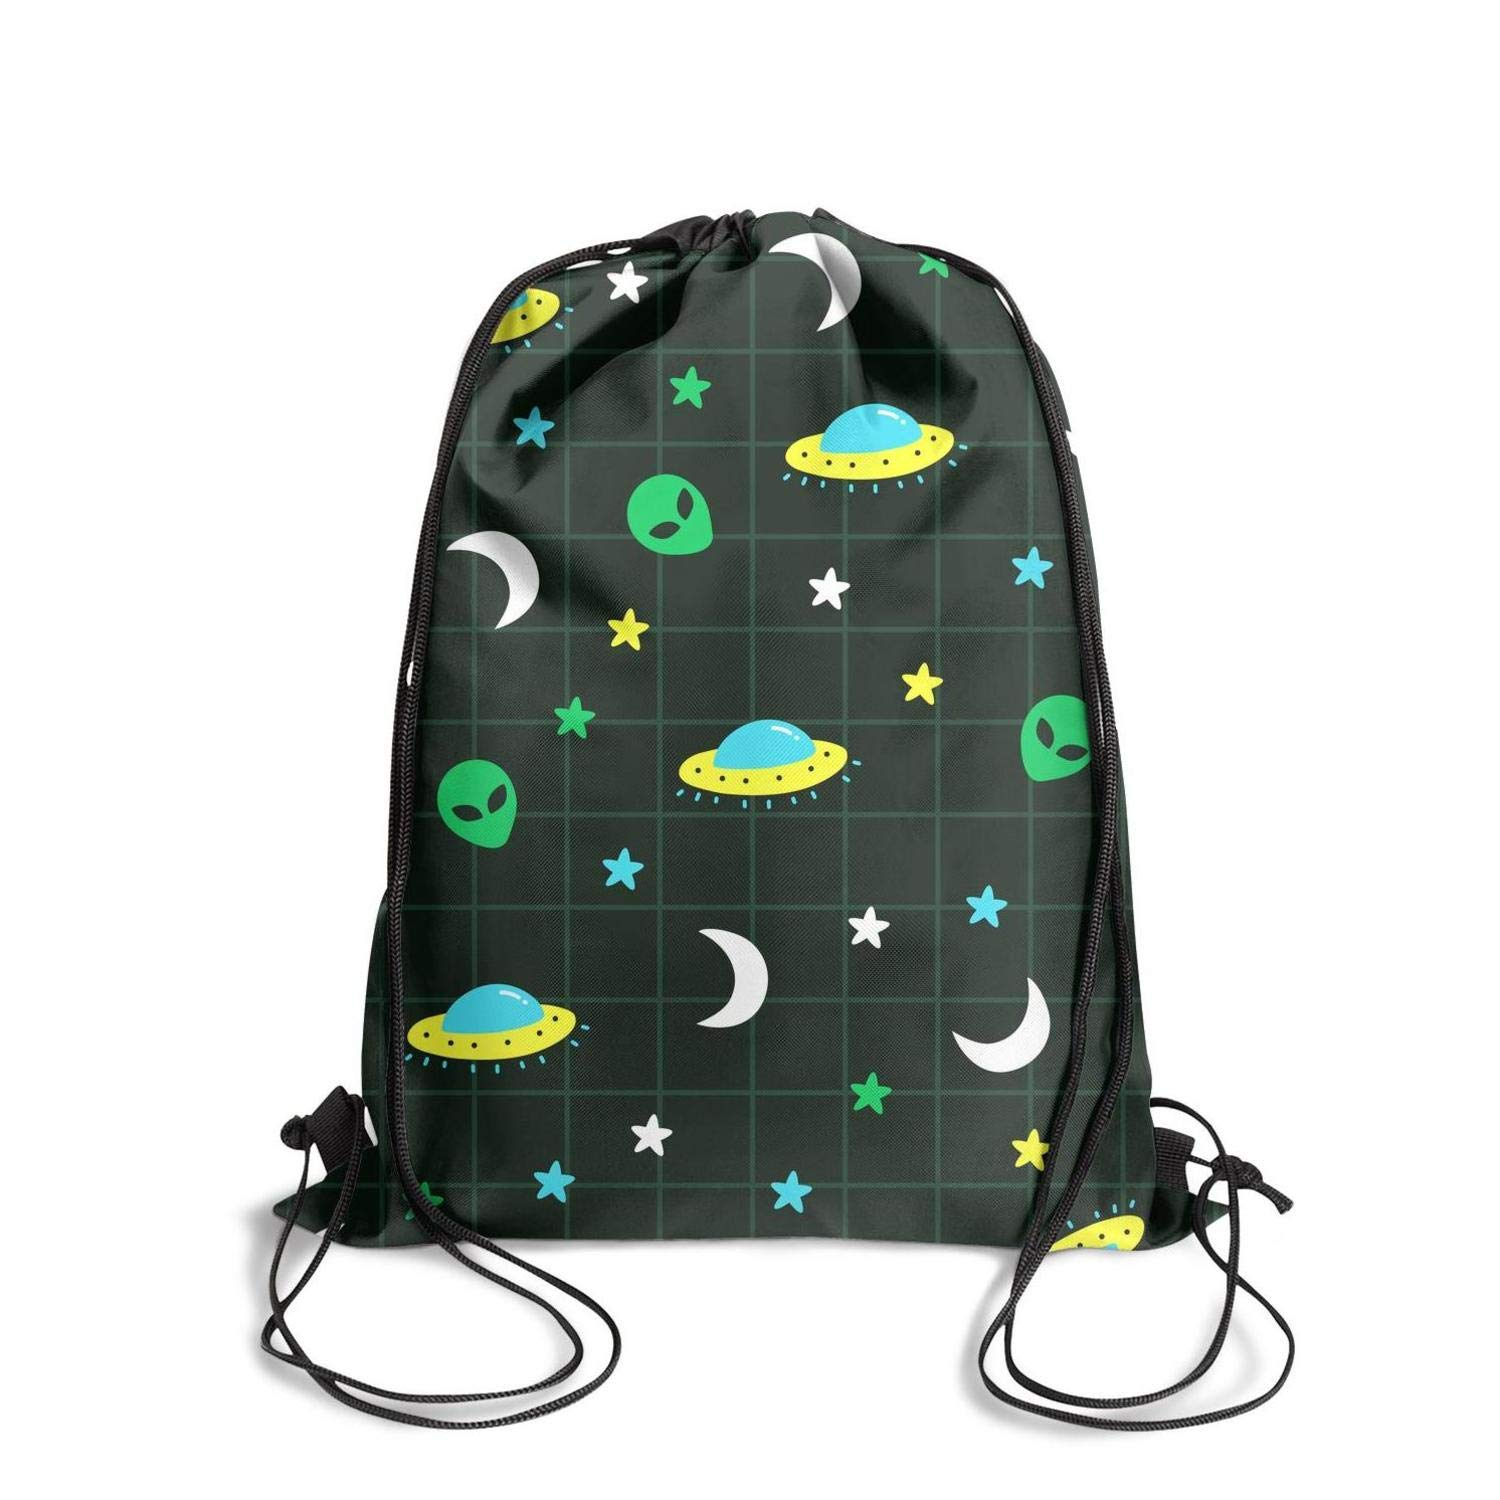 8b4c55454214 Amazon.com : CBBYY Drawstring Hiking Backpack Paris Eiffel Tower ...